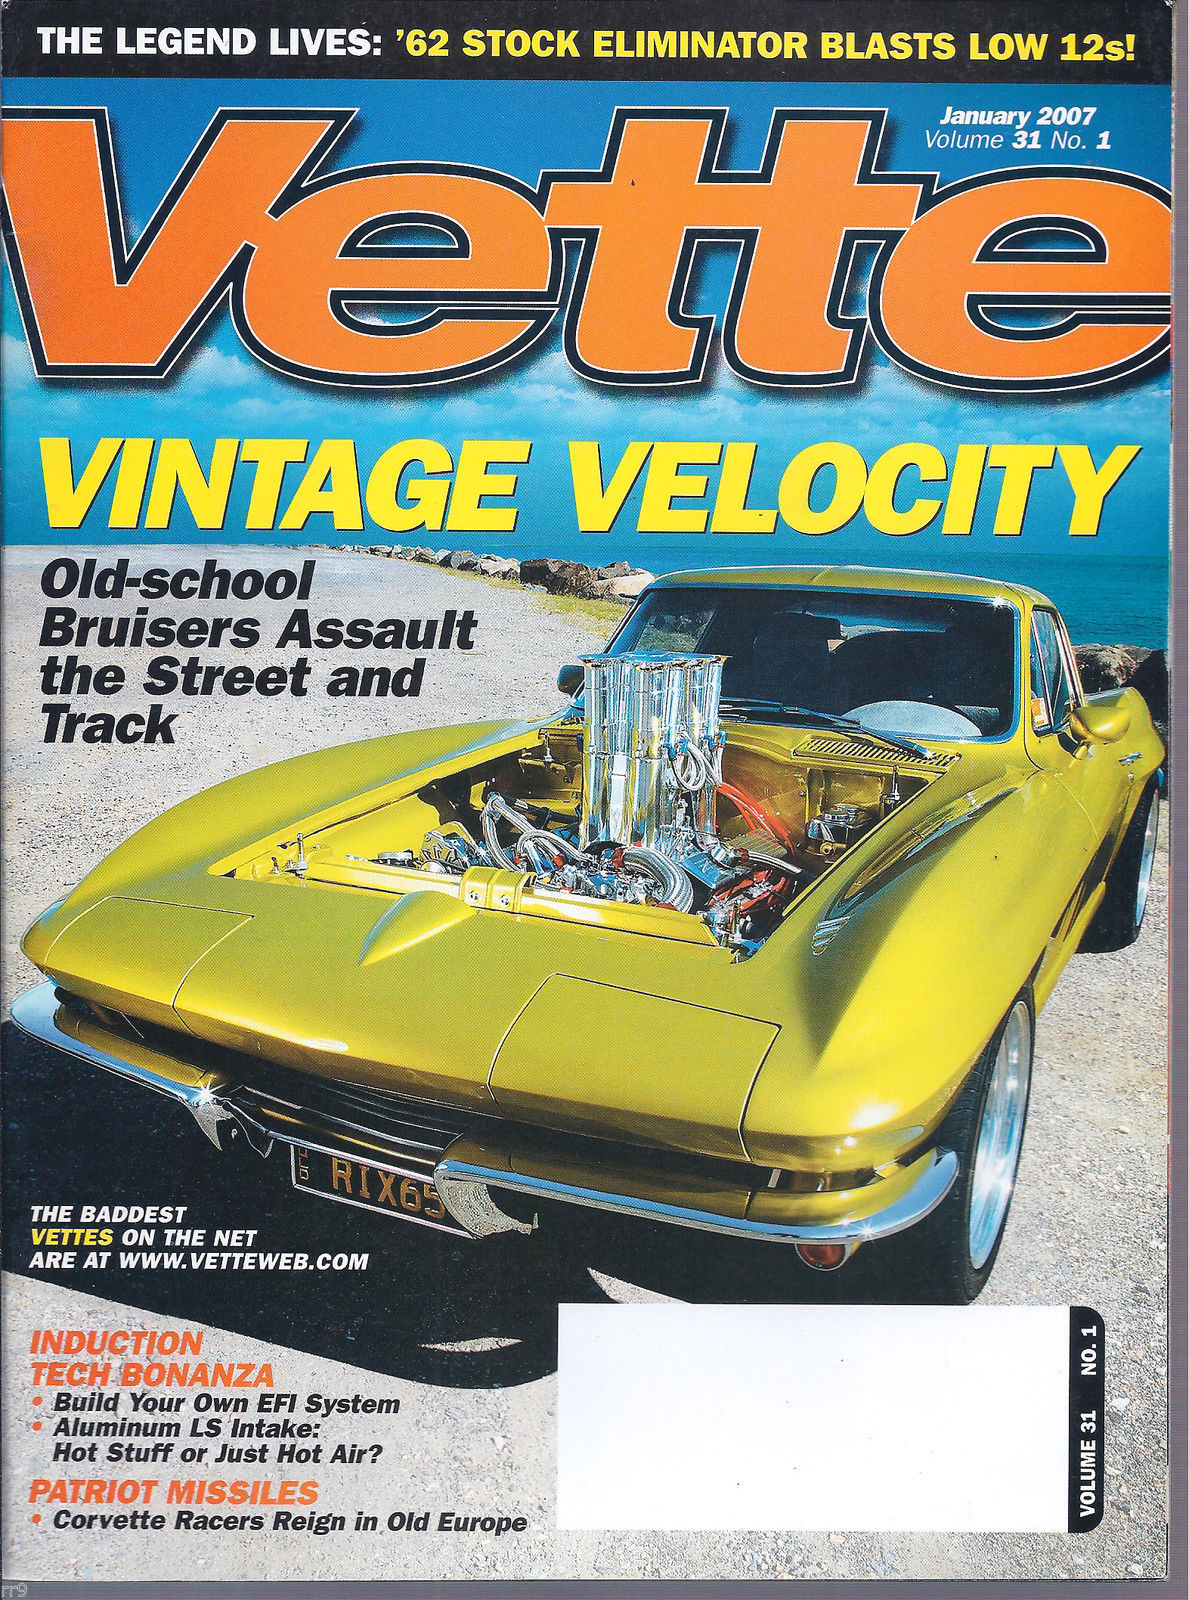 Primary image for Vette Magazine January 2007 The Legends Lives '62 Stock Eliminator